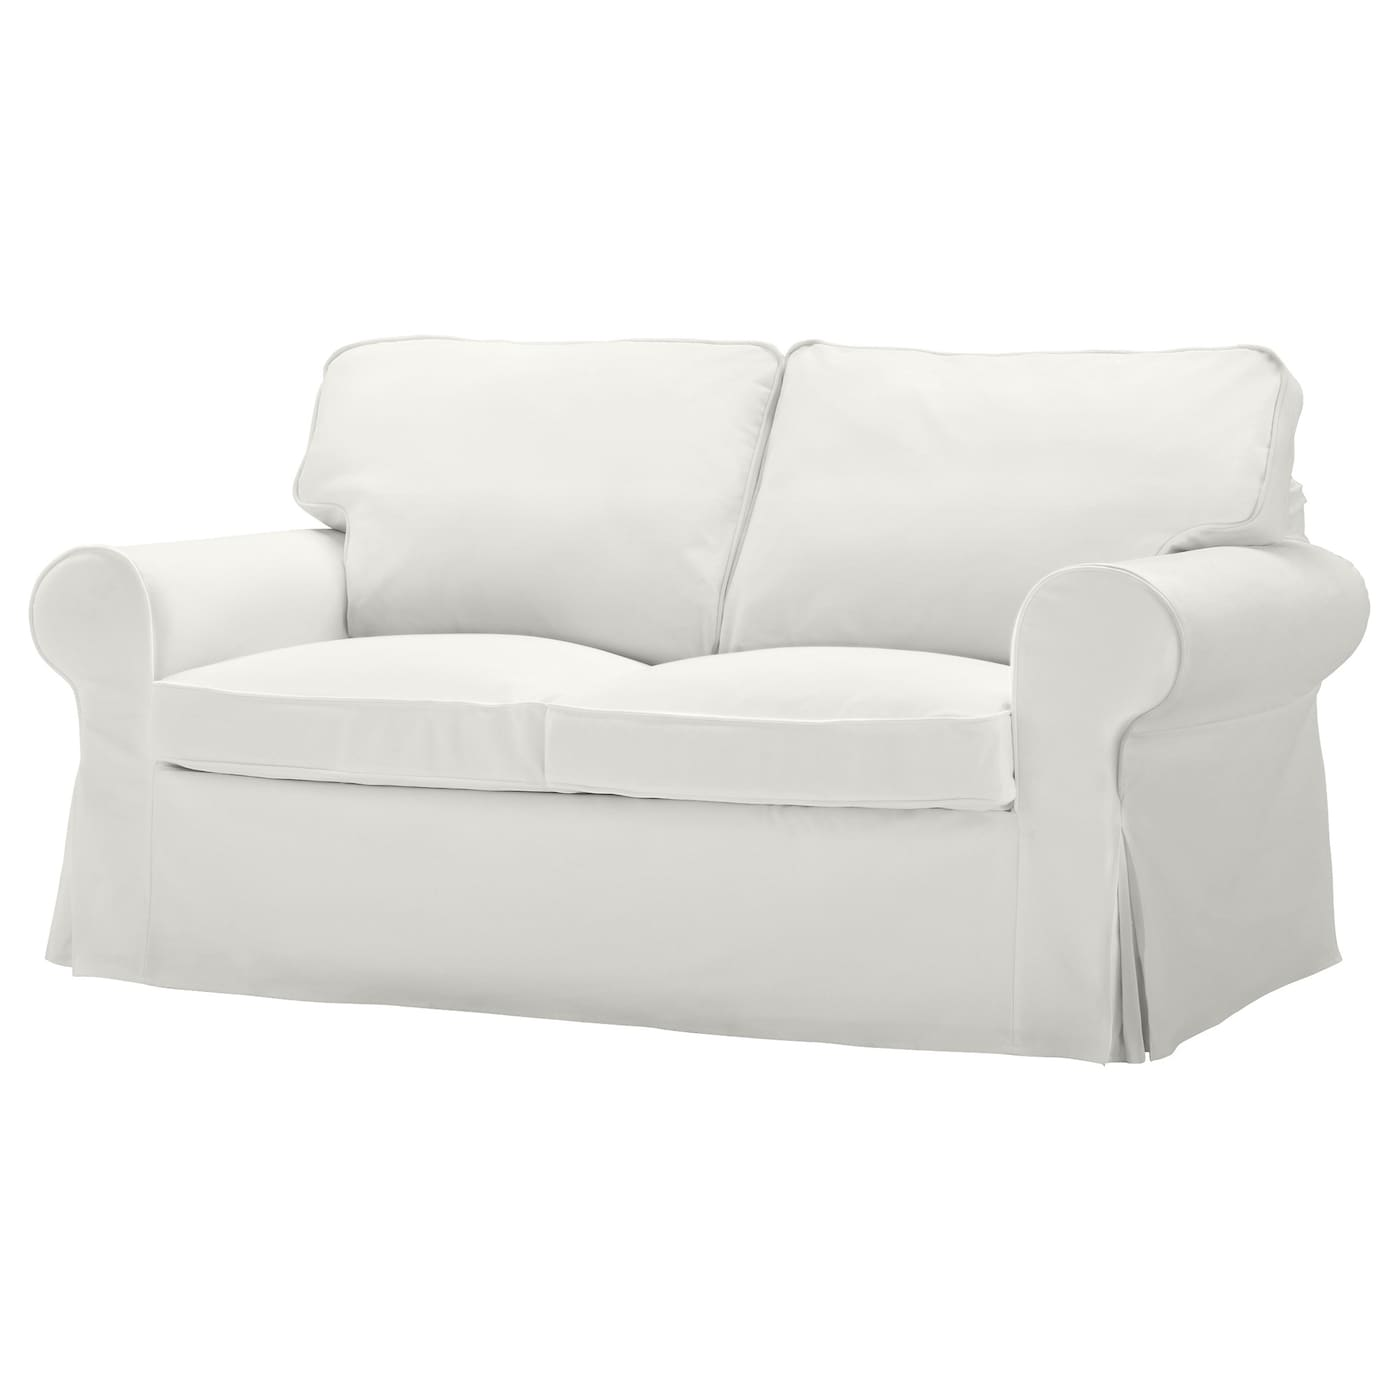 Ektorp cover two seat sofa blekinge white ikea White loveseat slipcovers